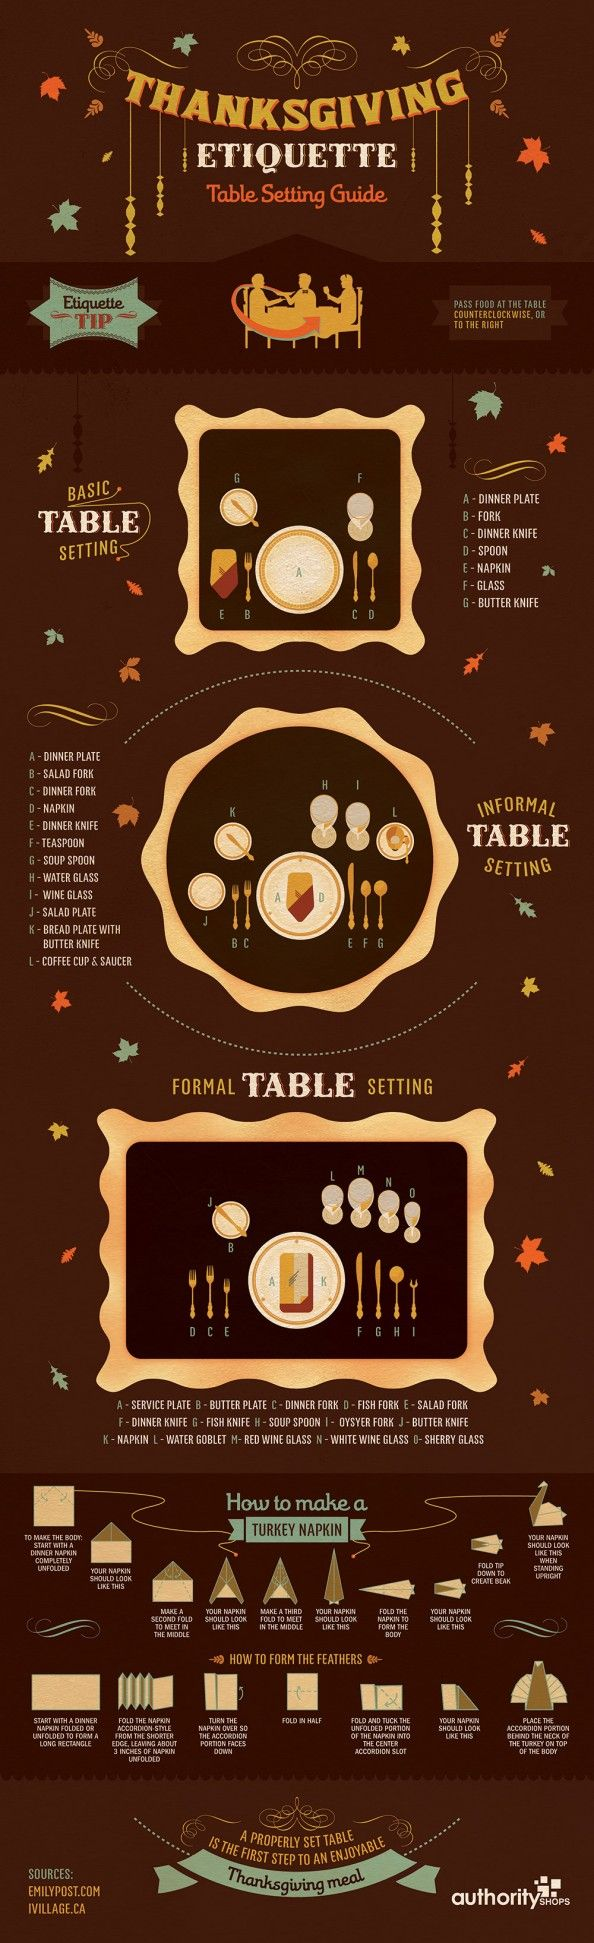 A properly set table is the first step to an enjoyable Thanksgiving meal. Let this infographic help you make your holiday special.